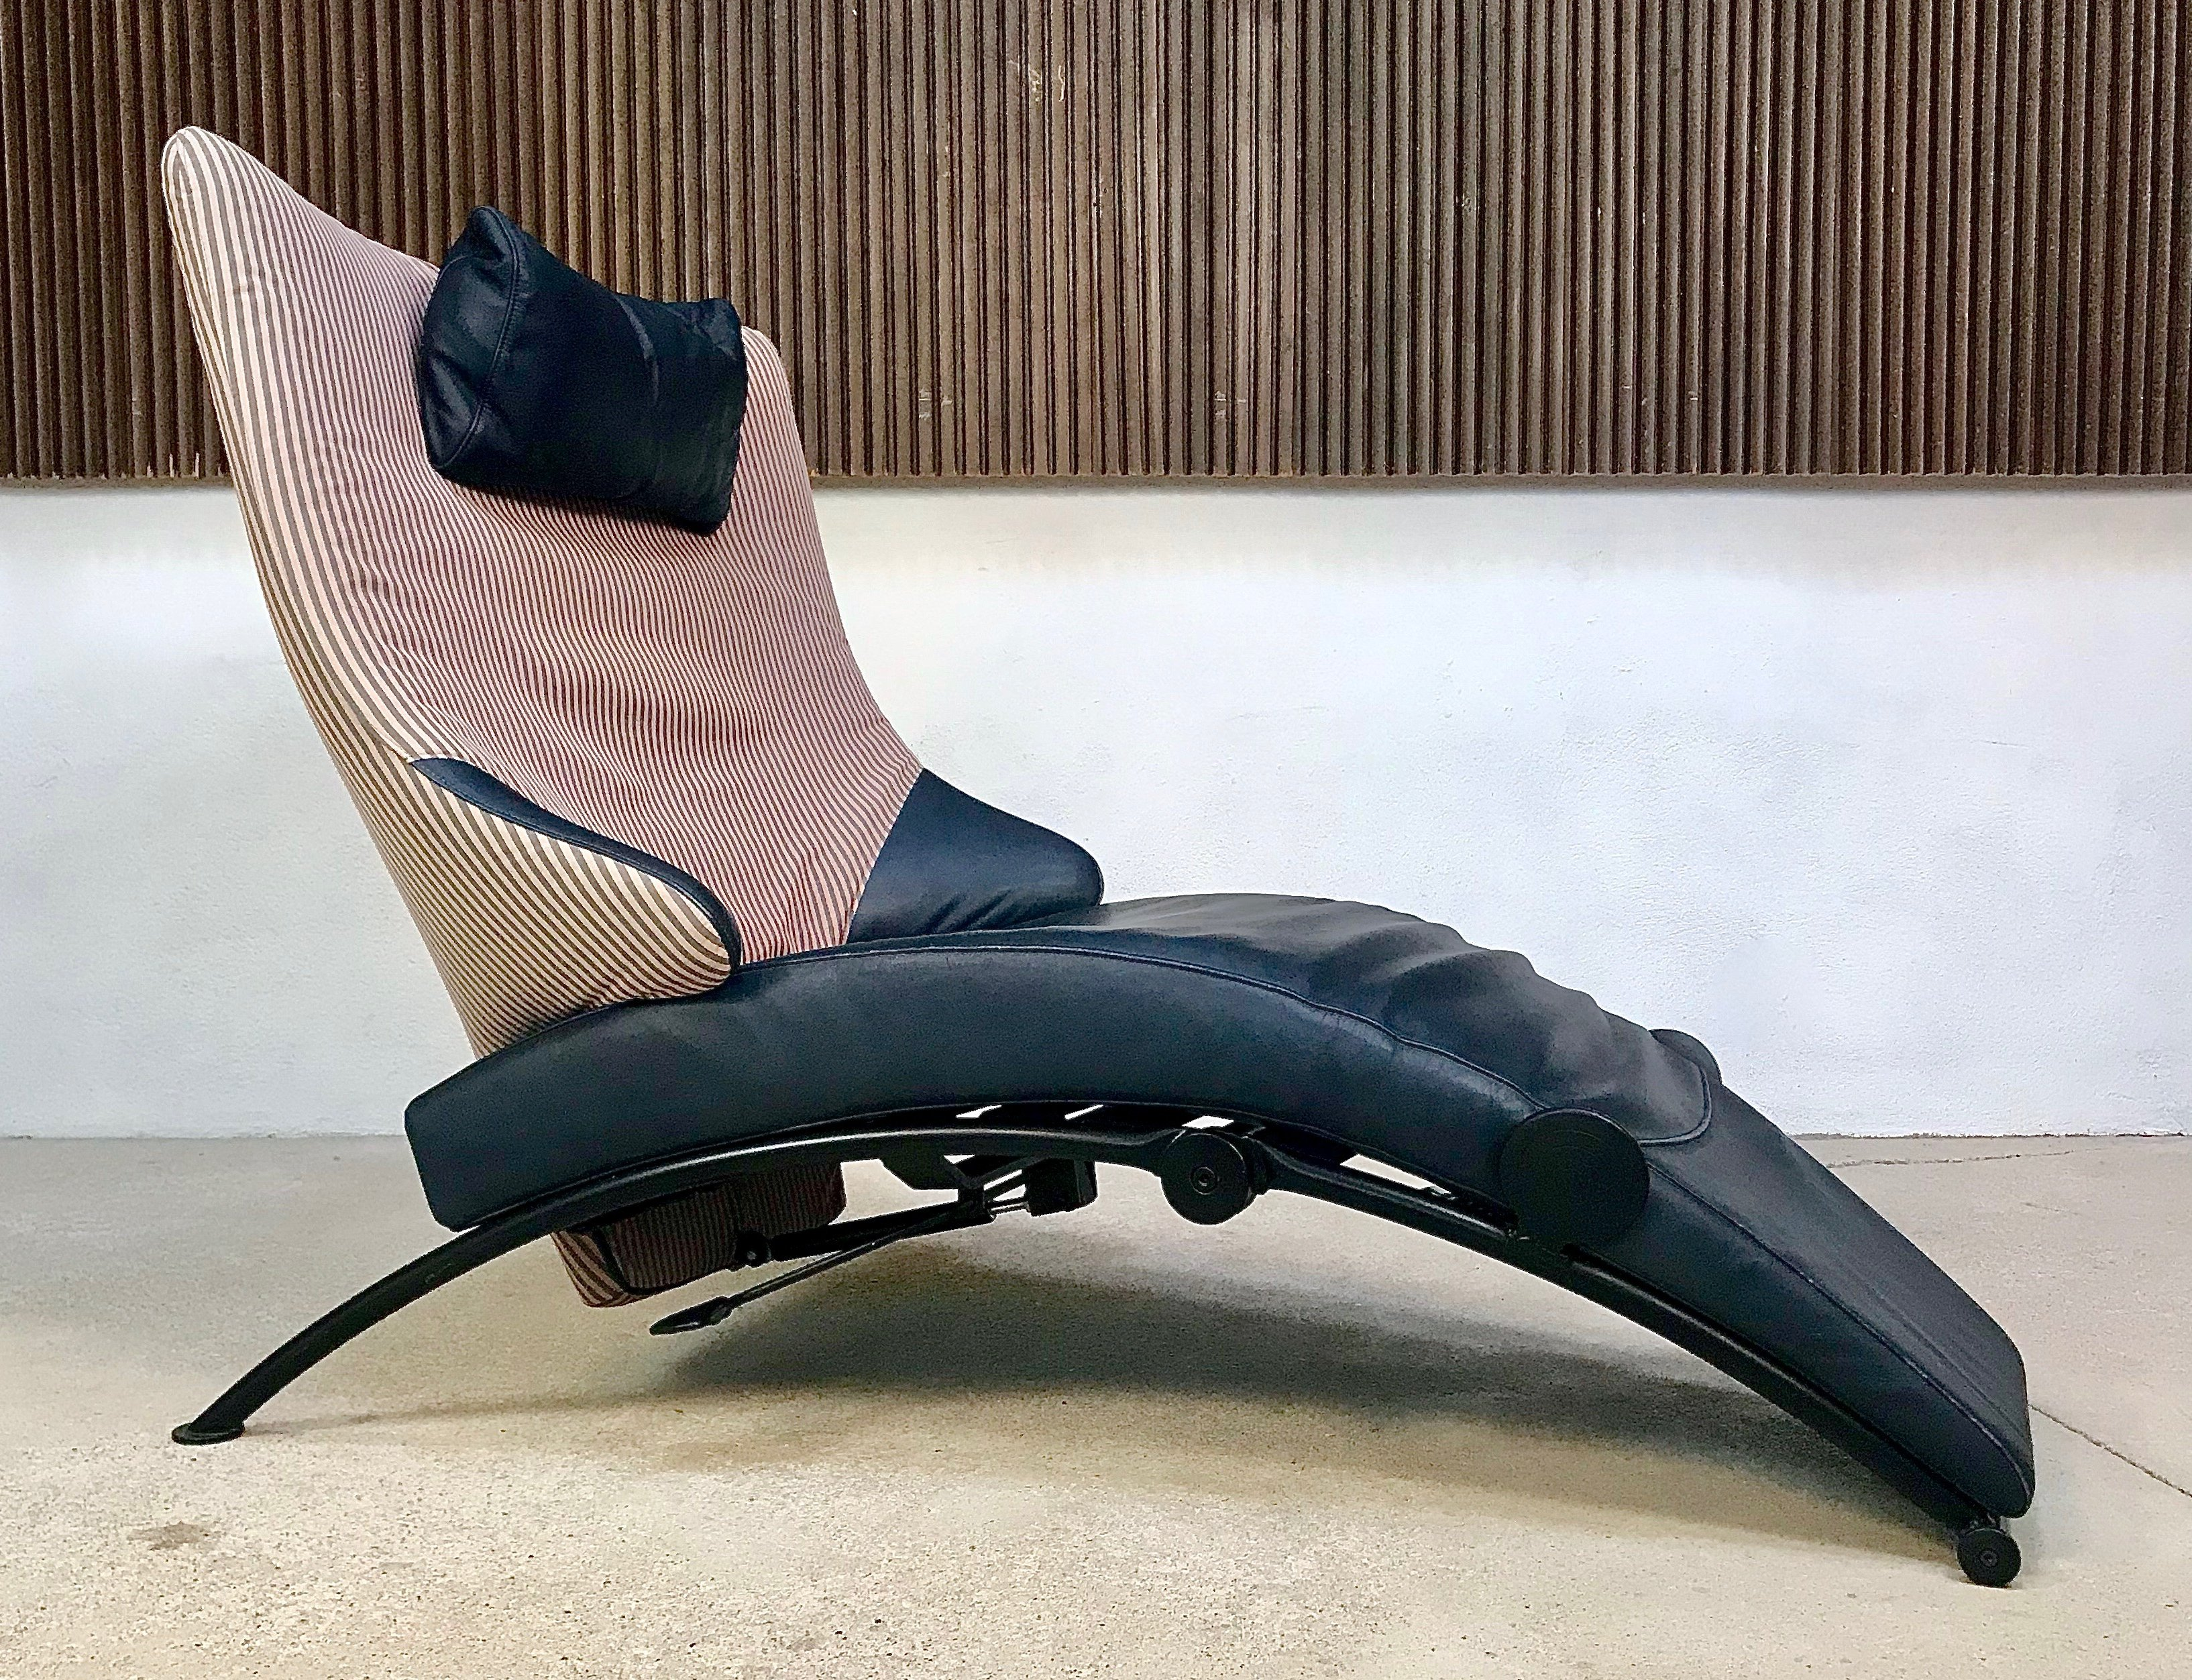 Astonishing Solo 699 Leather Cotton Lounge Chair By Stefan Heiliger For Wk Wohnen 1980S Caraccident5 Cool Chair Designs And Ideas Caraccident5Info